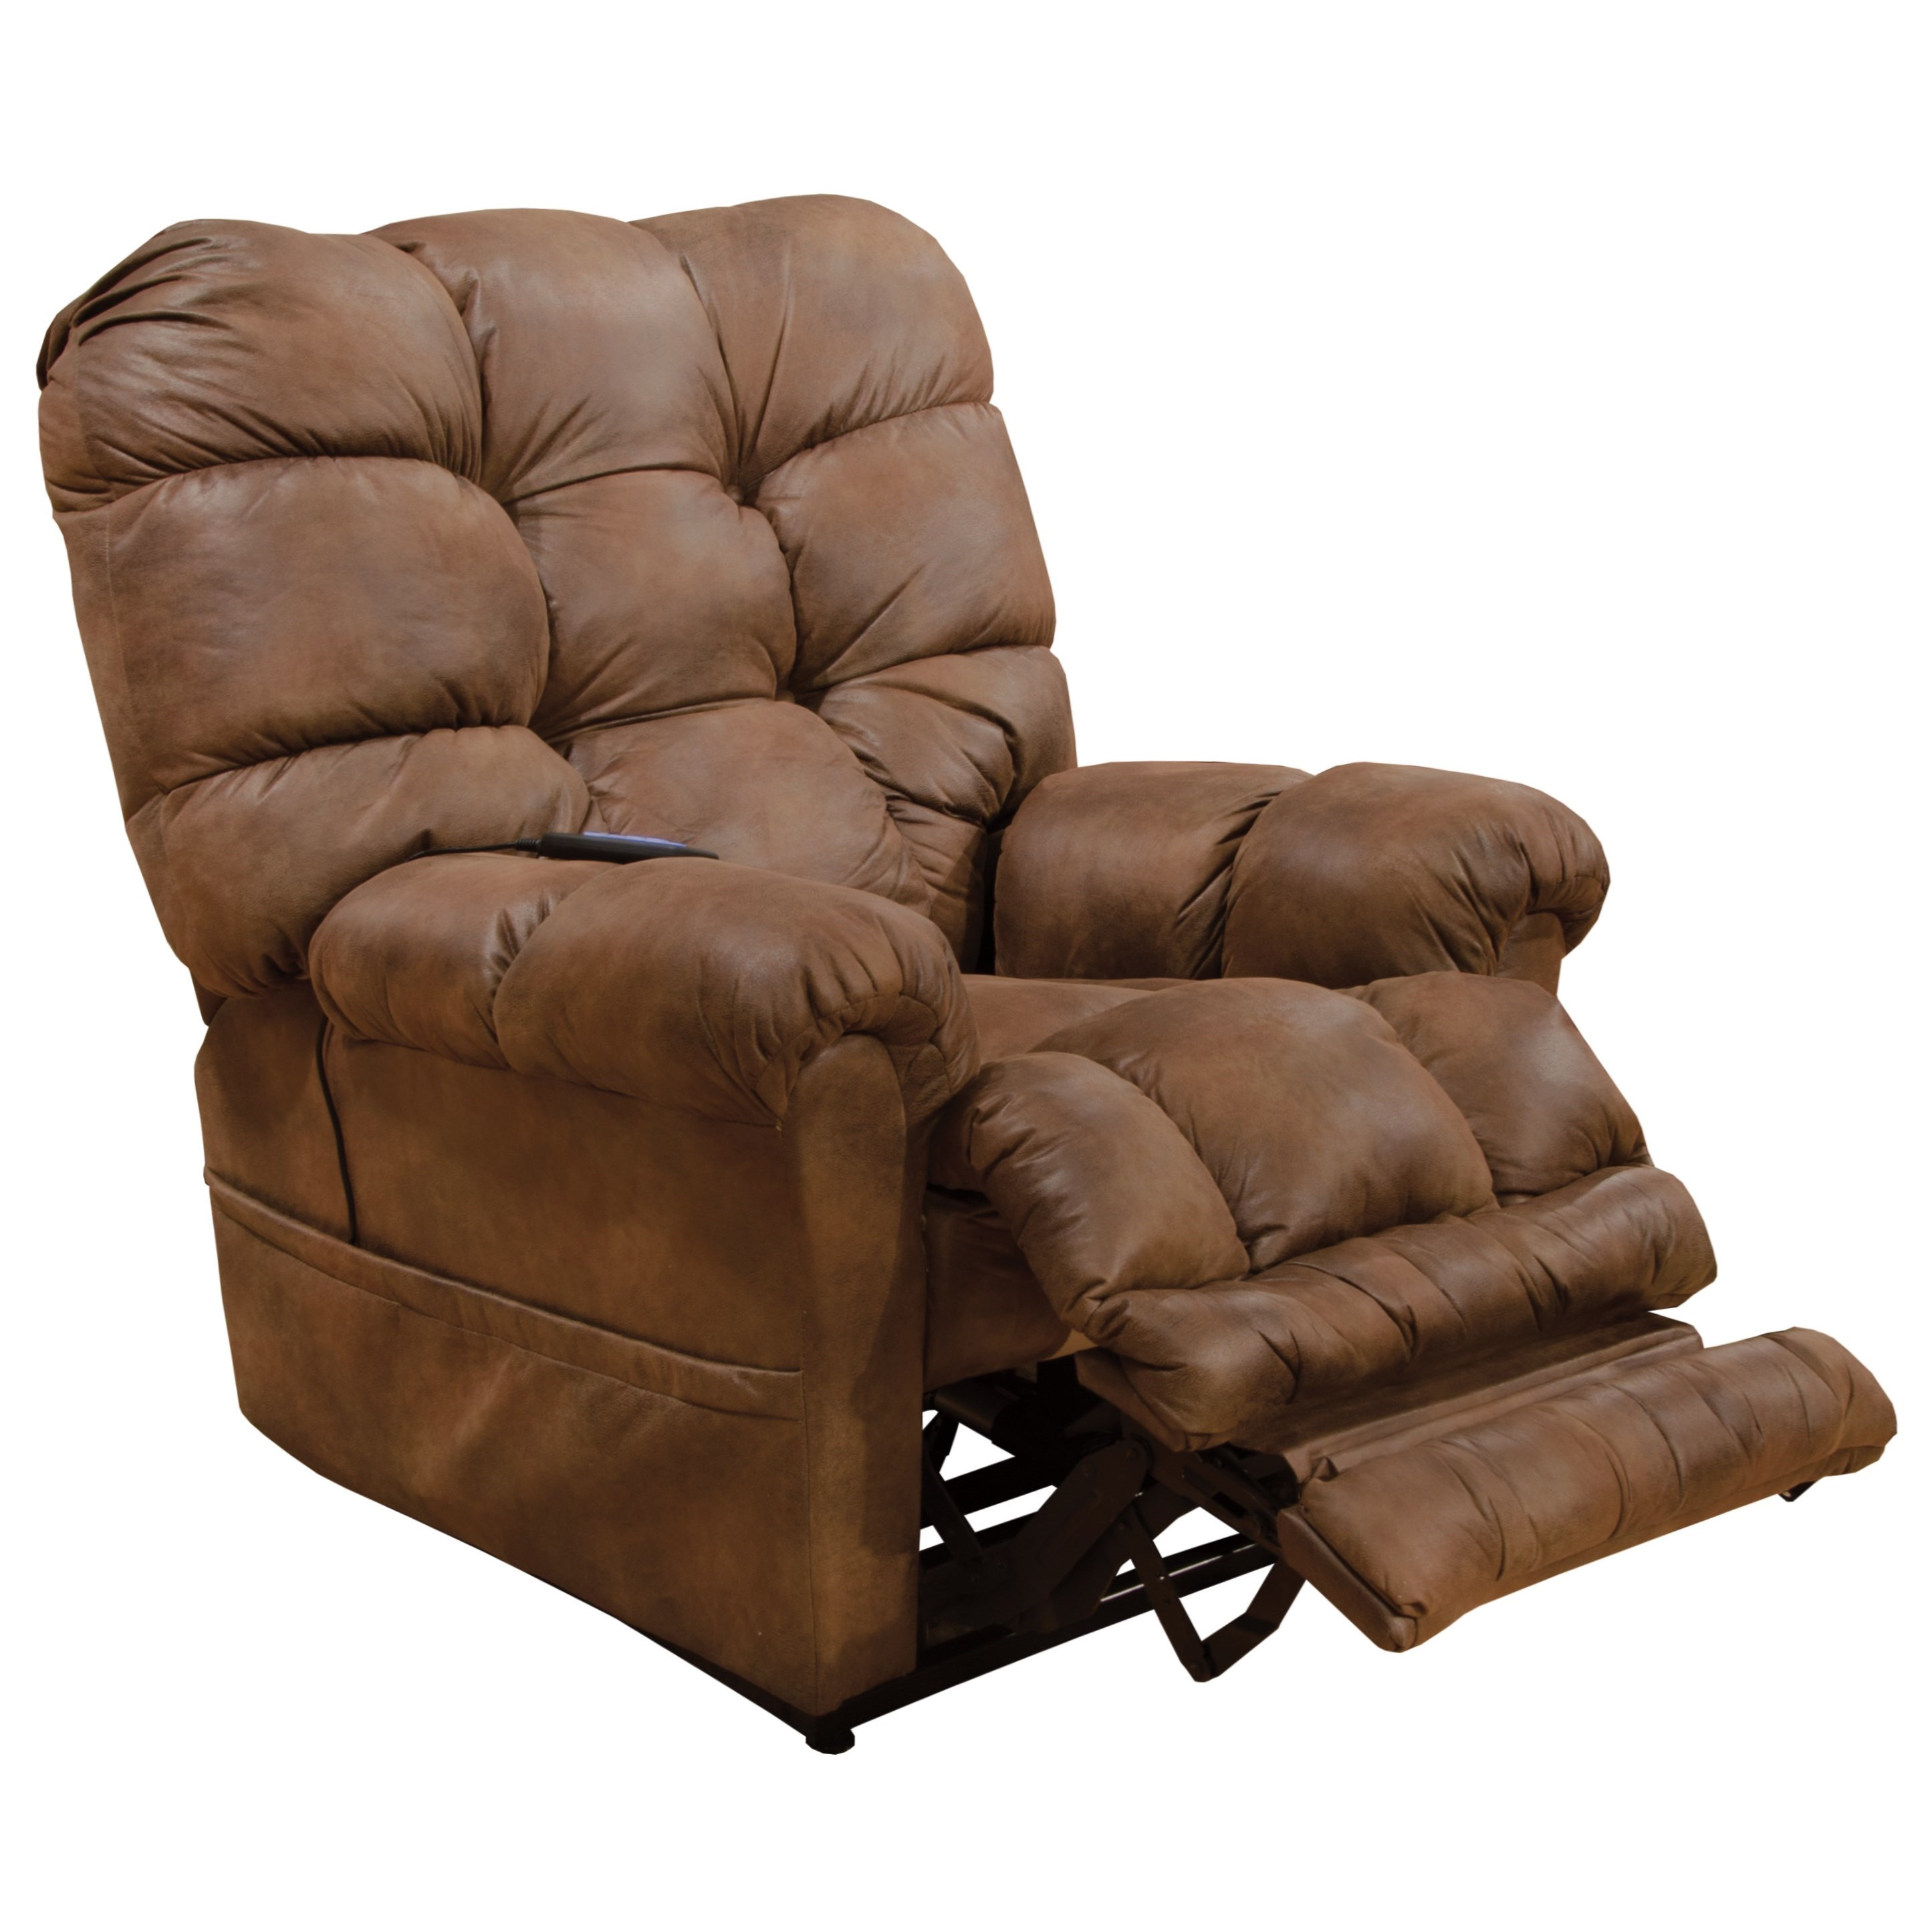 Catnapper Oliver Casual Power Lift Recliner With Extended